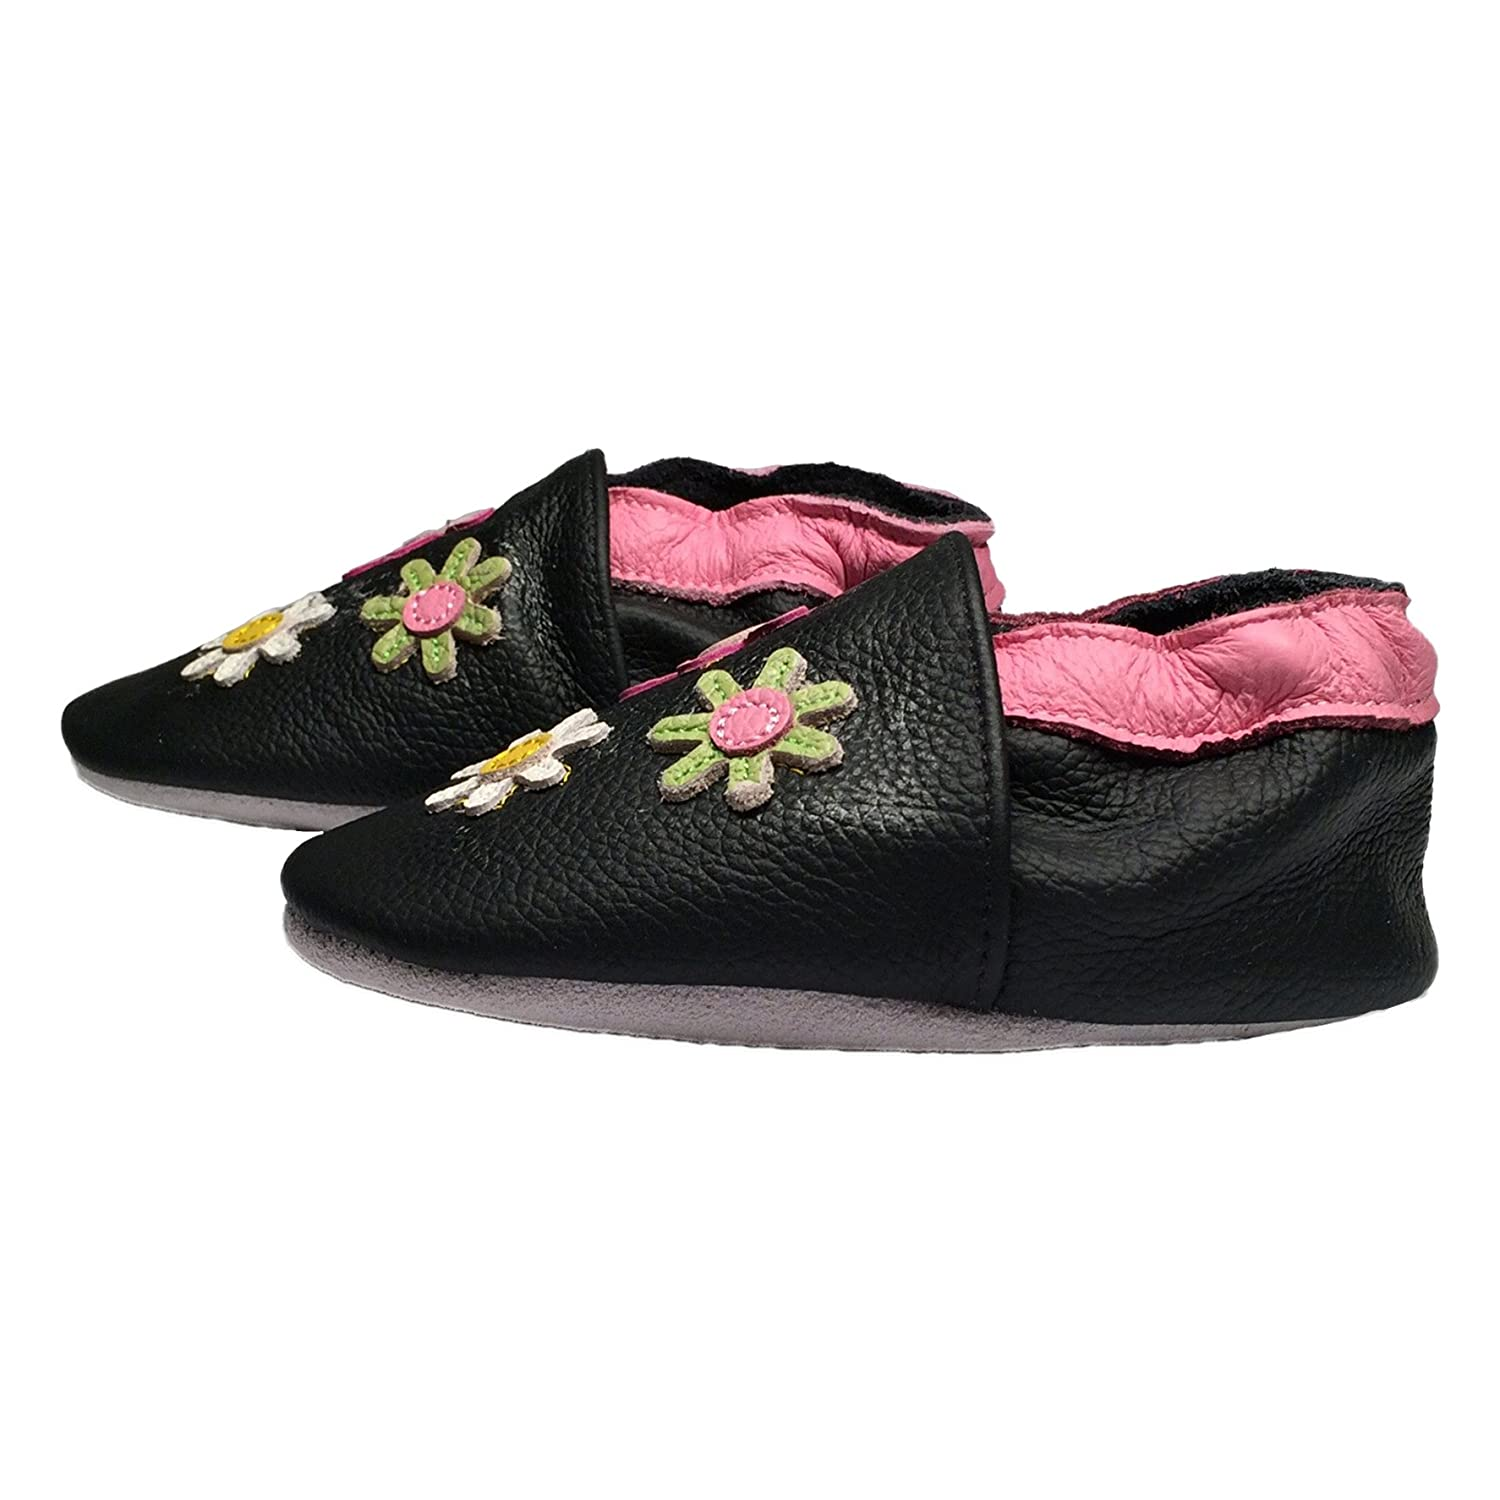 Baby Rae Infant//Toddler BlackFlower Soft Sole Leather Shoes